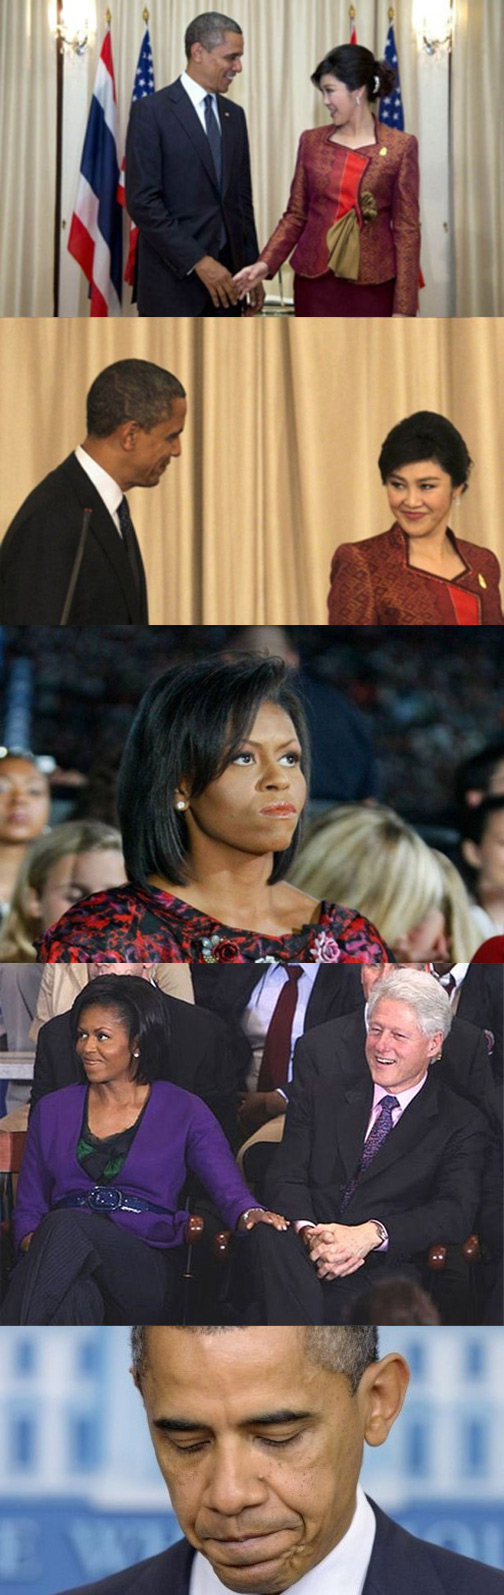 Michelle Obama gets even with the president